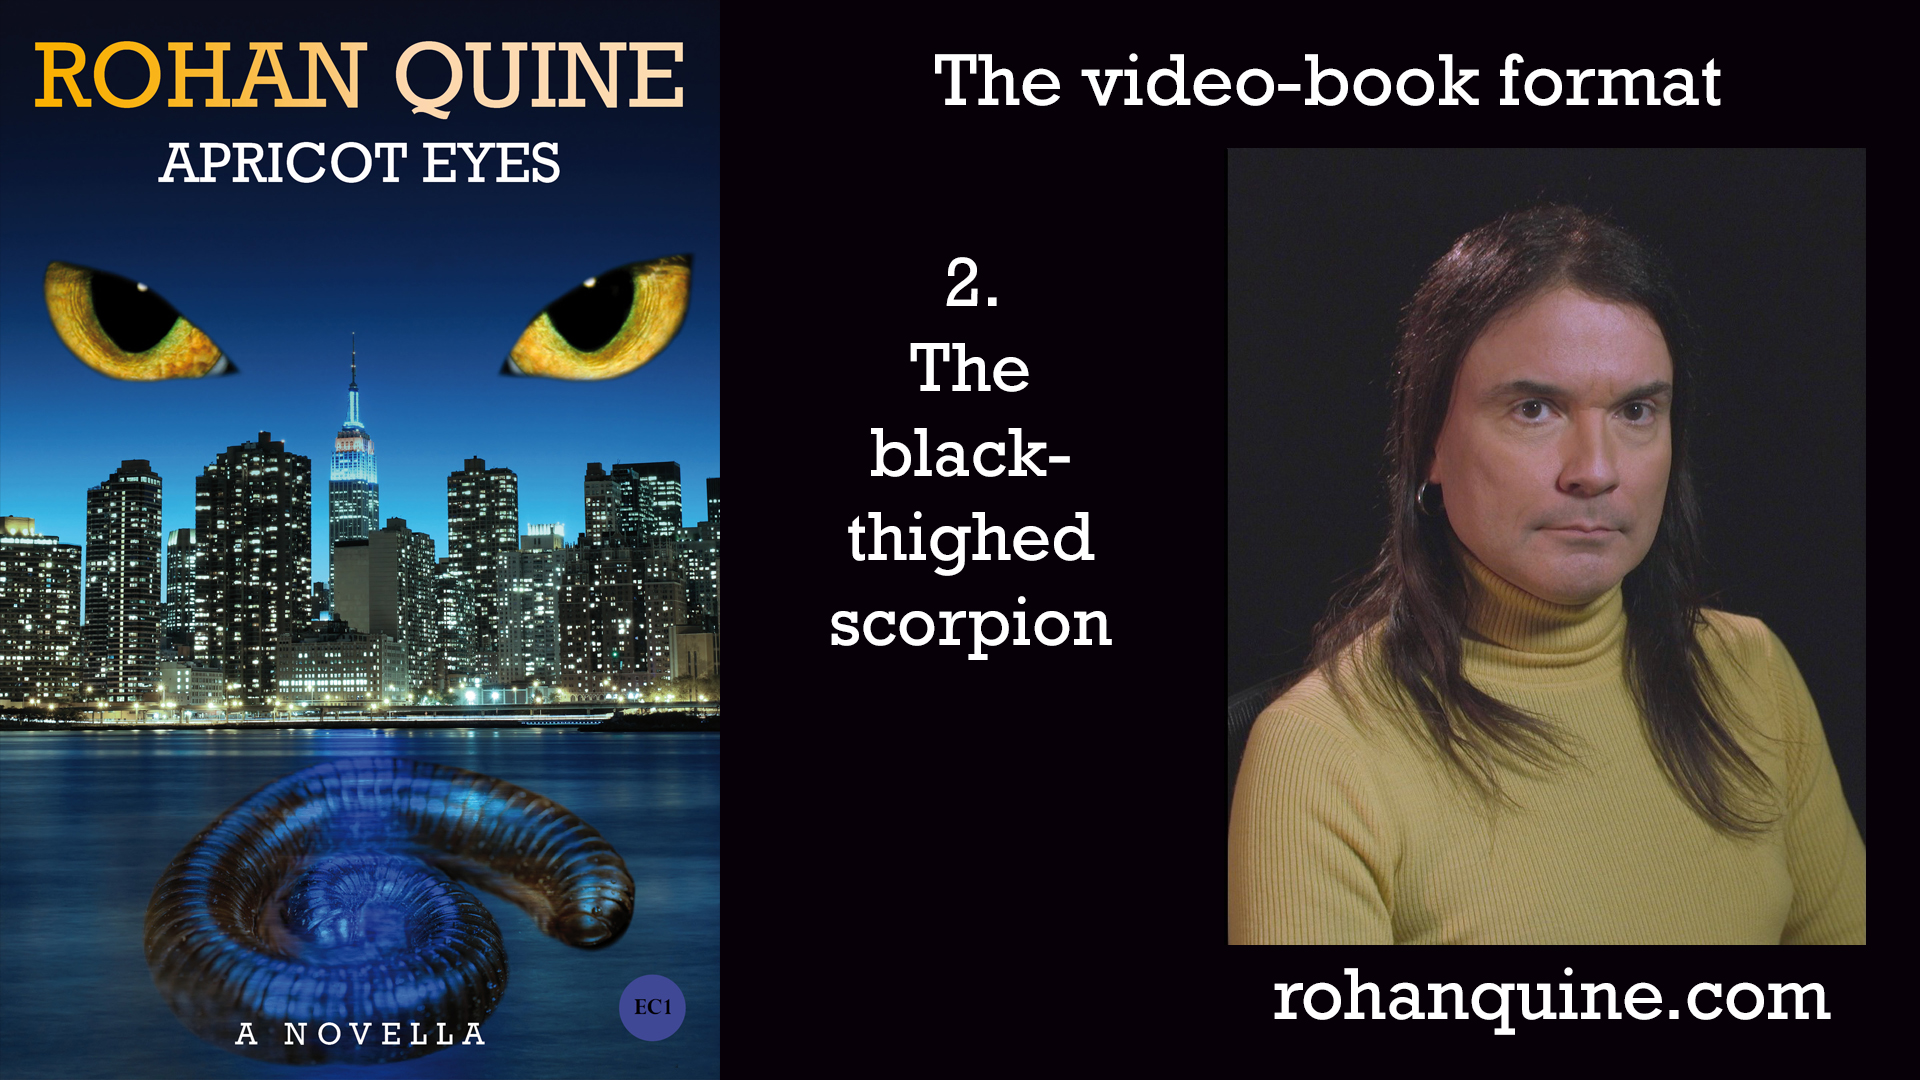 APRICOT EYES by Rohan Quine - video-book format - chapter 2